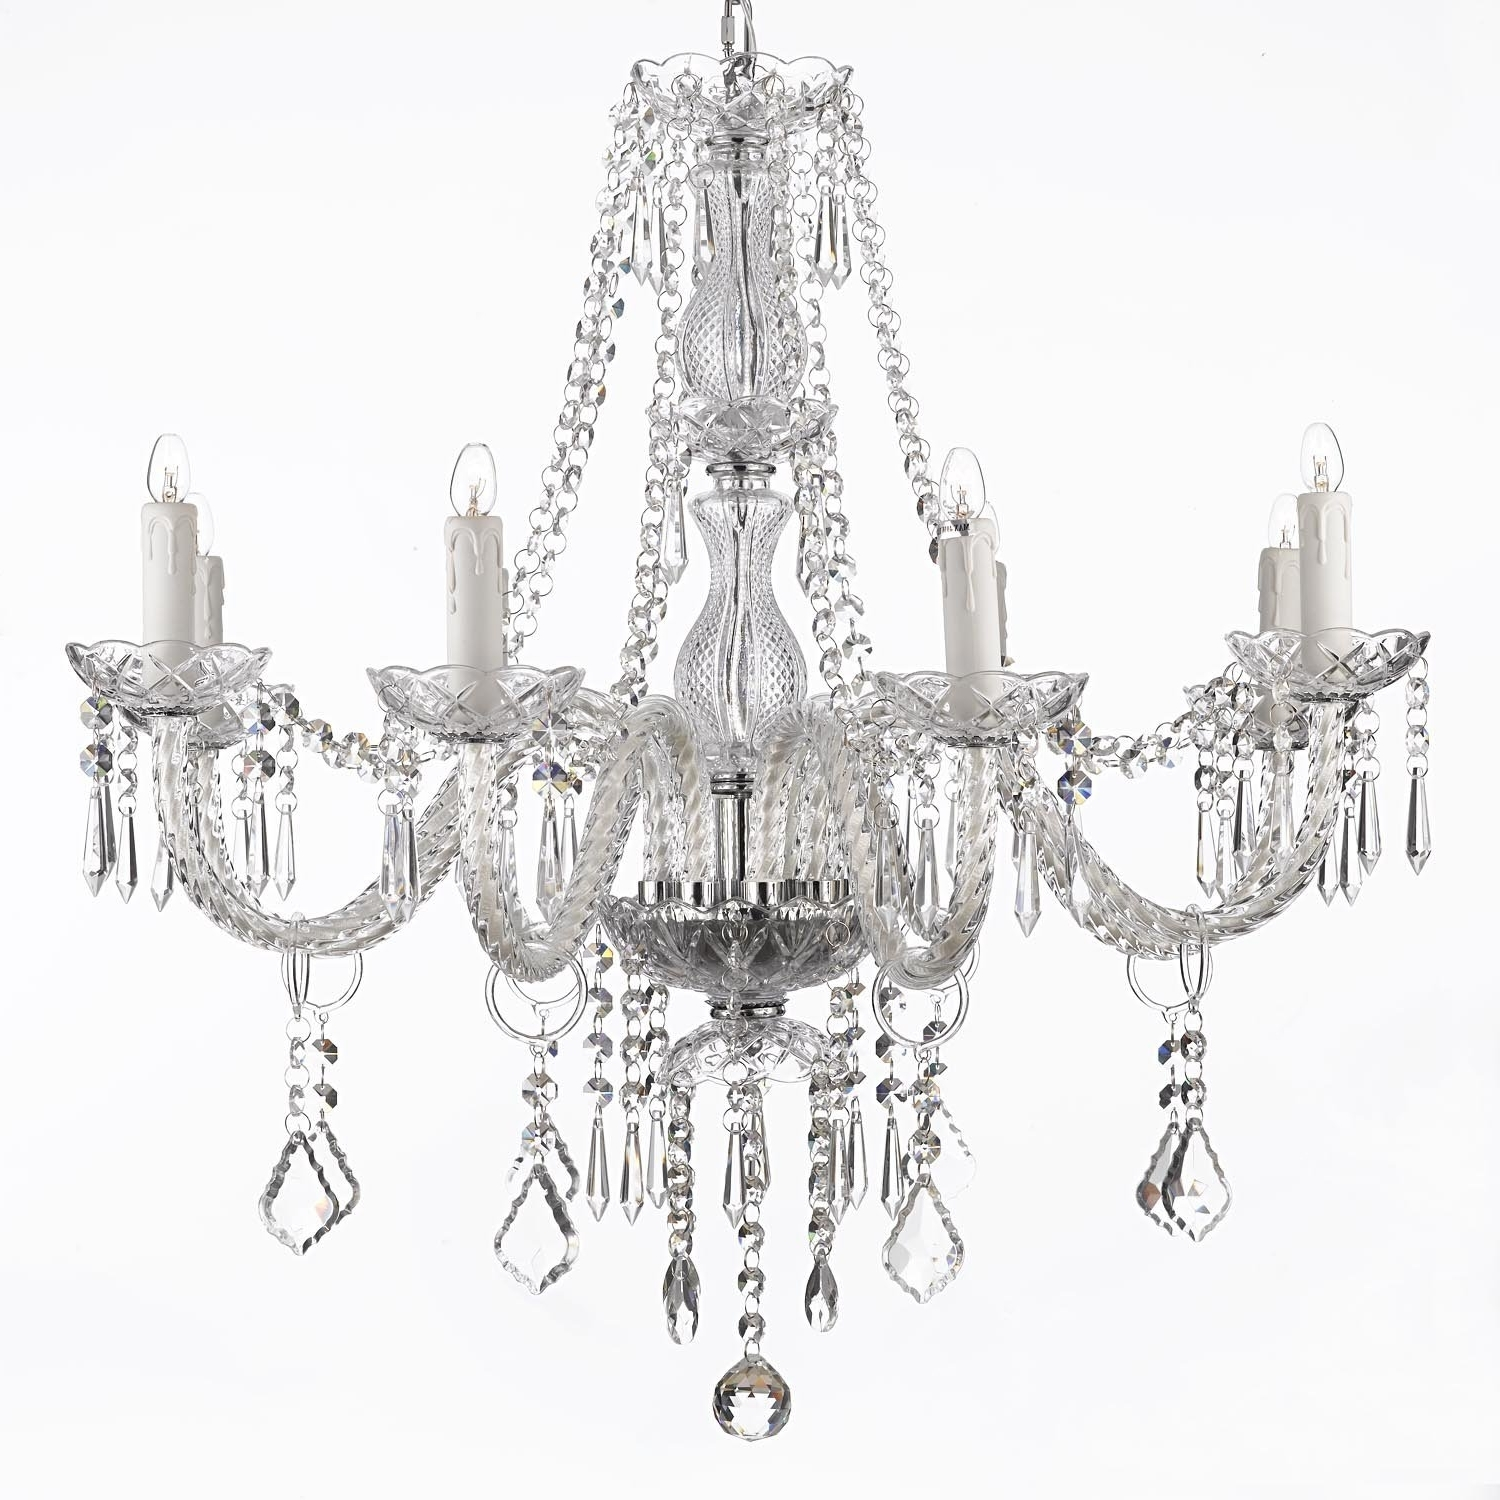 [%How To Choose The Best Chandelier [Buyer's Guide] Pertaining To Most Recent Hanging Candelabra Chandeliers|Hanging Candelabra Chandeliers Throughout Most Current How To Choose The Best Chandelier [Buyer's Guide]|Well Known Hanging Candelabra Chandeliers Pertaining To How To Choose The Best Chandelier [Buyer's Guide]|2017 How To Choose The Best Chandelier [Buyer's Guide] Within Hanging Candelabra Chandeliers%] (View 7 of 15)